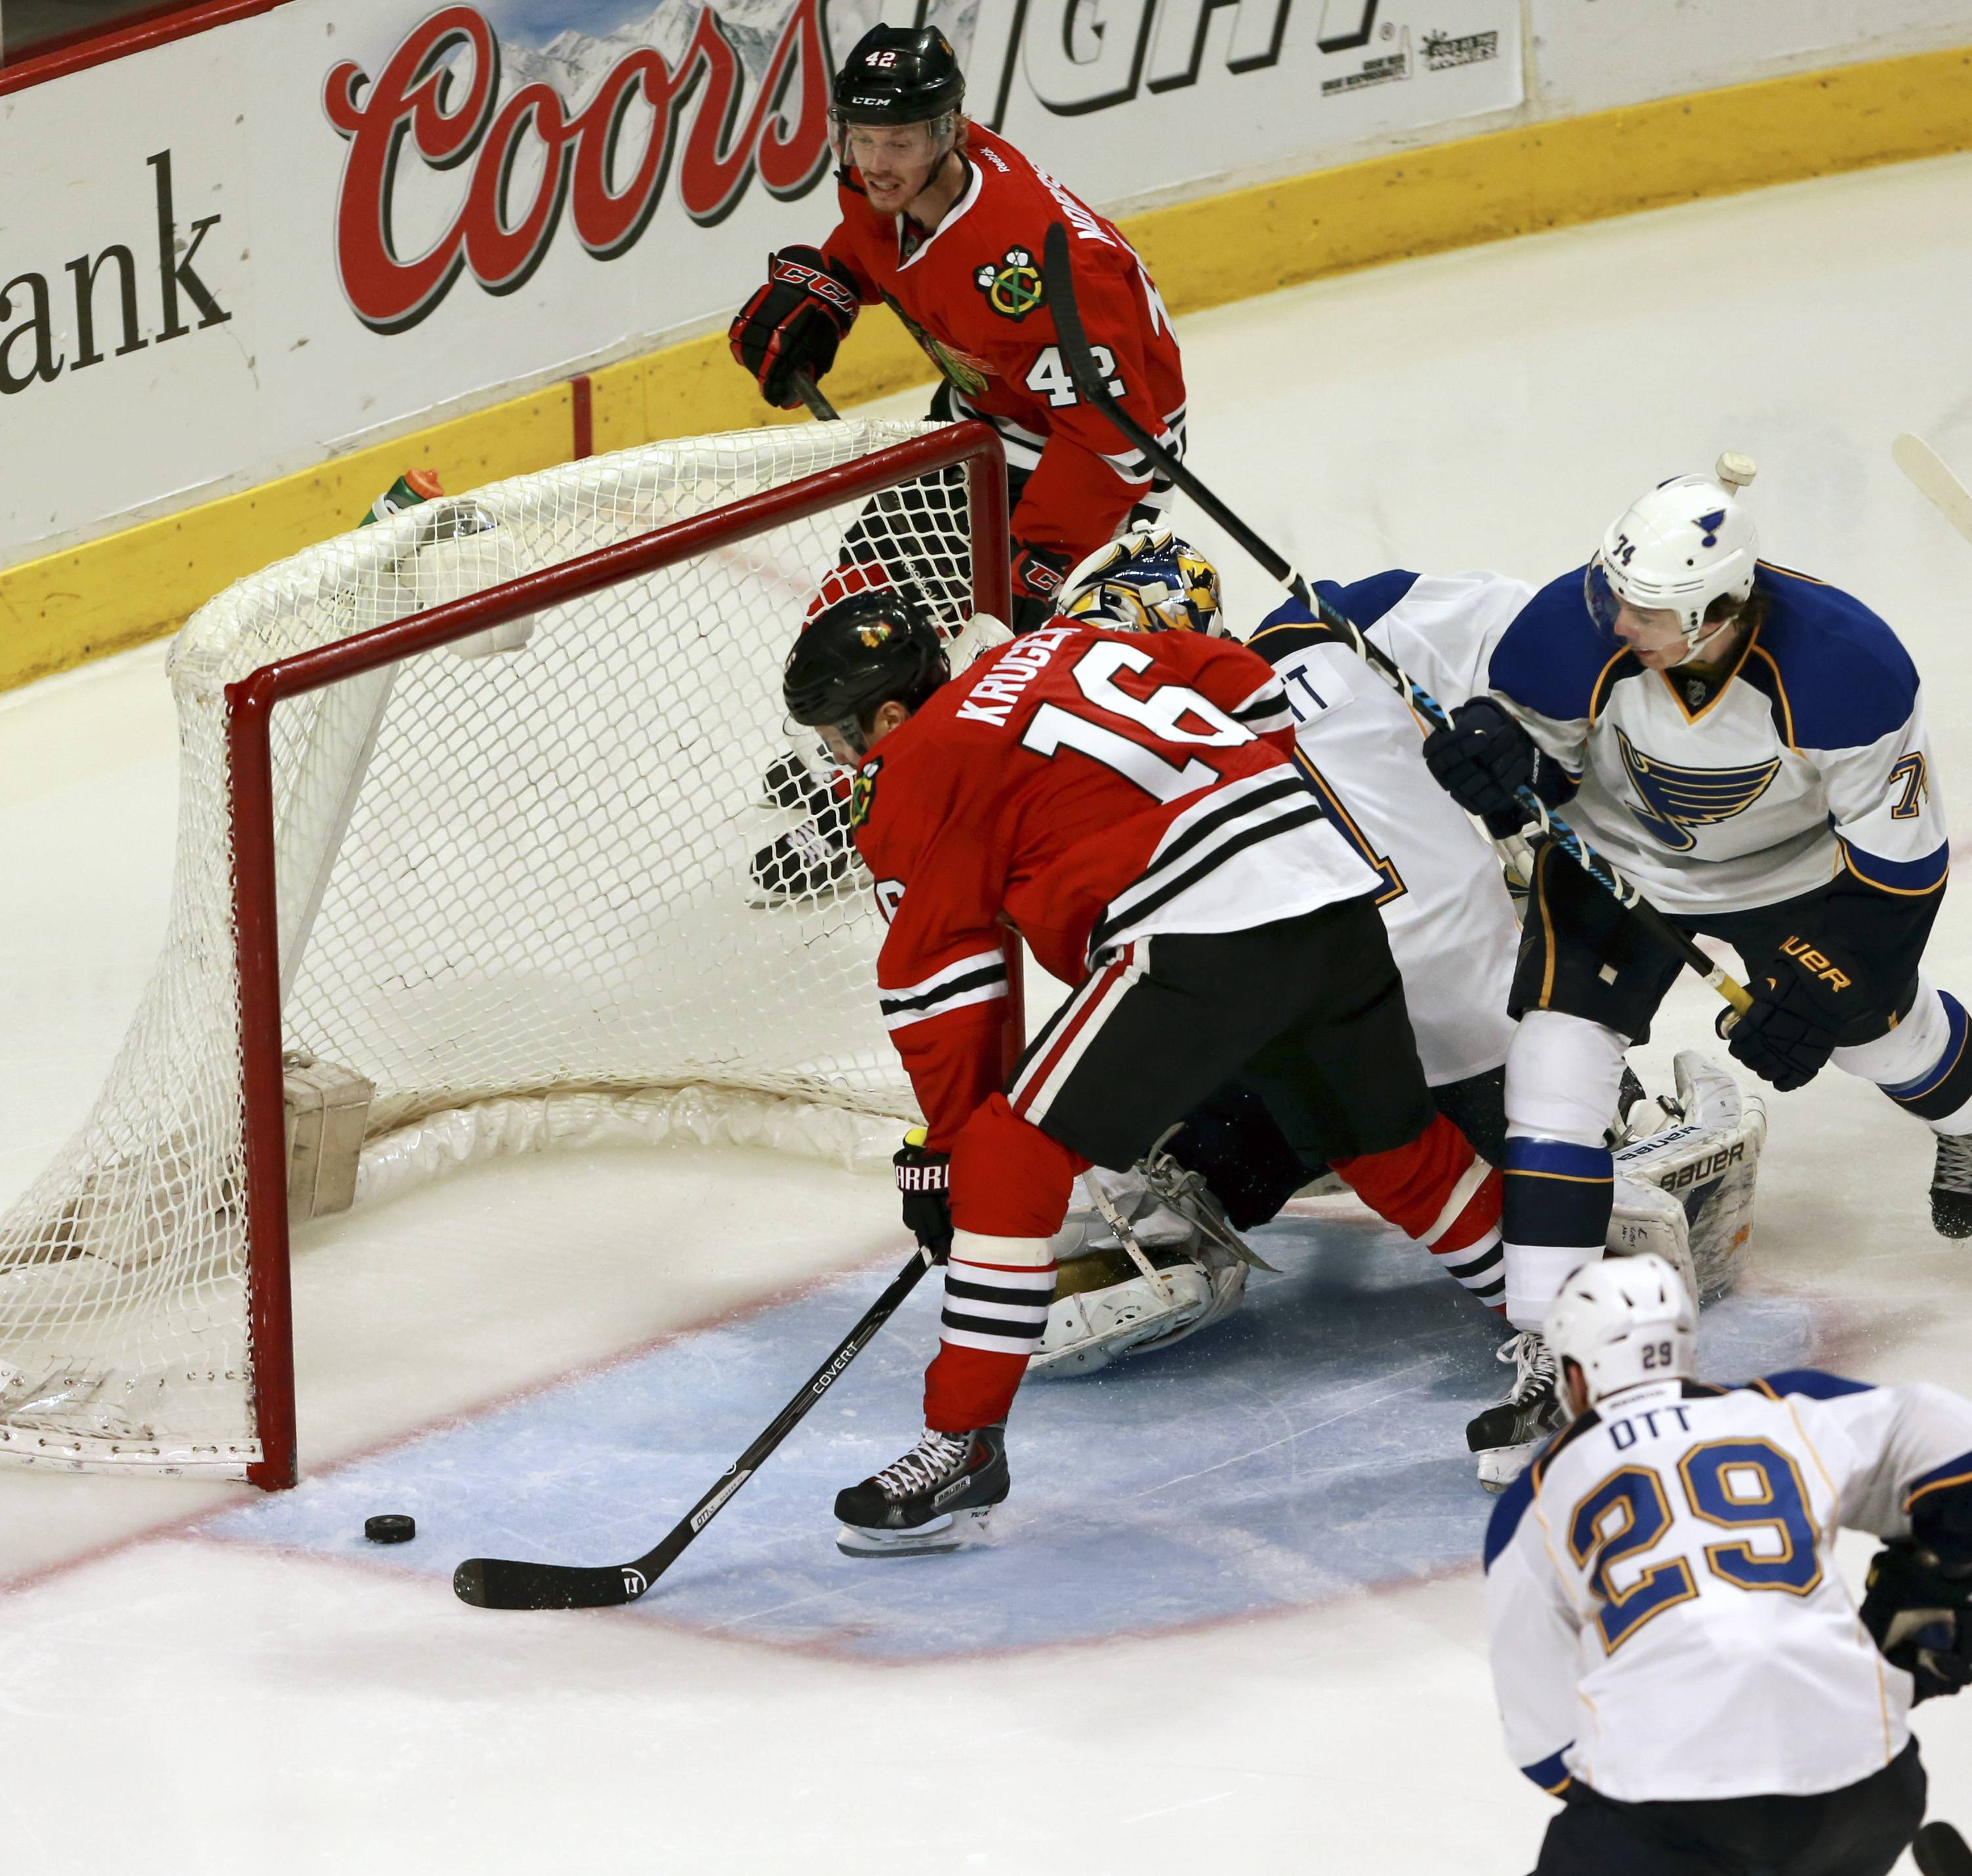 Blackhawks Marcus Kruger, left, scores against the St. Louis Blues in an NHL hockey game in Chicago on Sunday, April 6, 2014. The Blackhawks won 4-2.